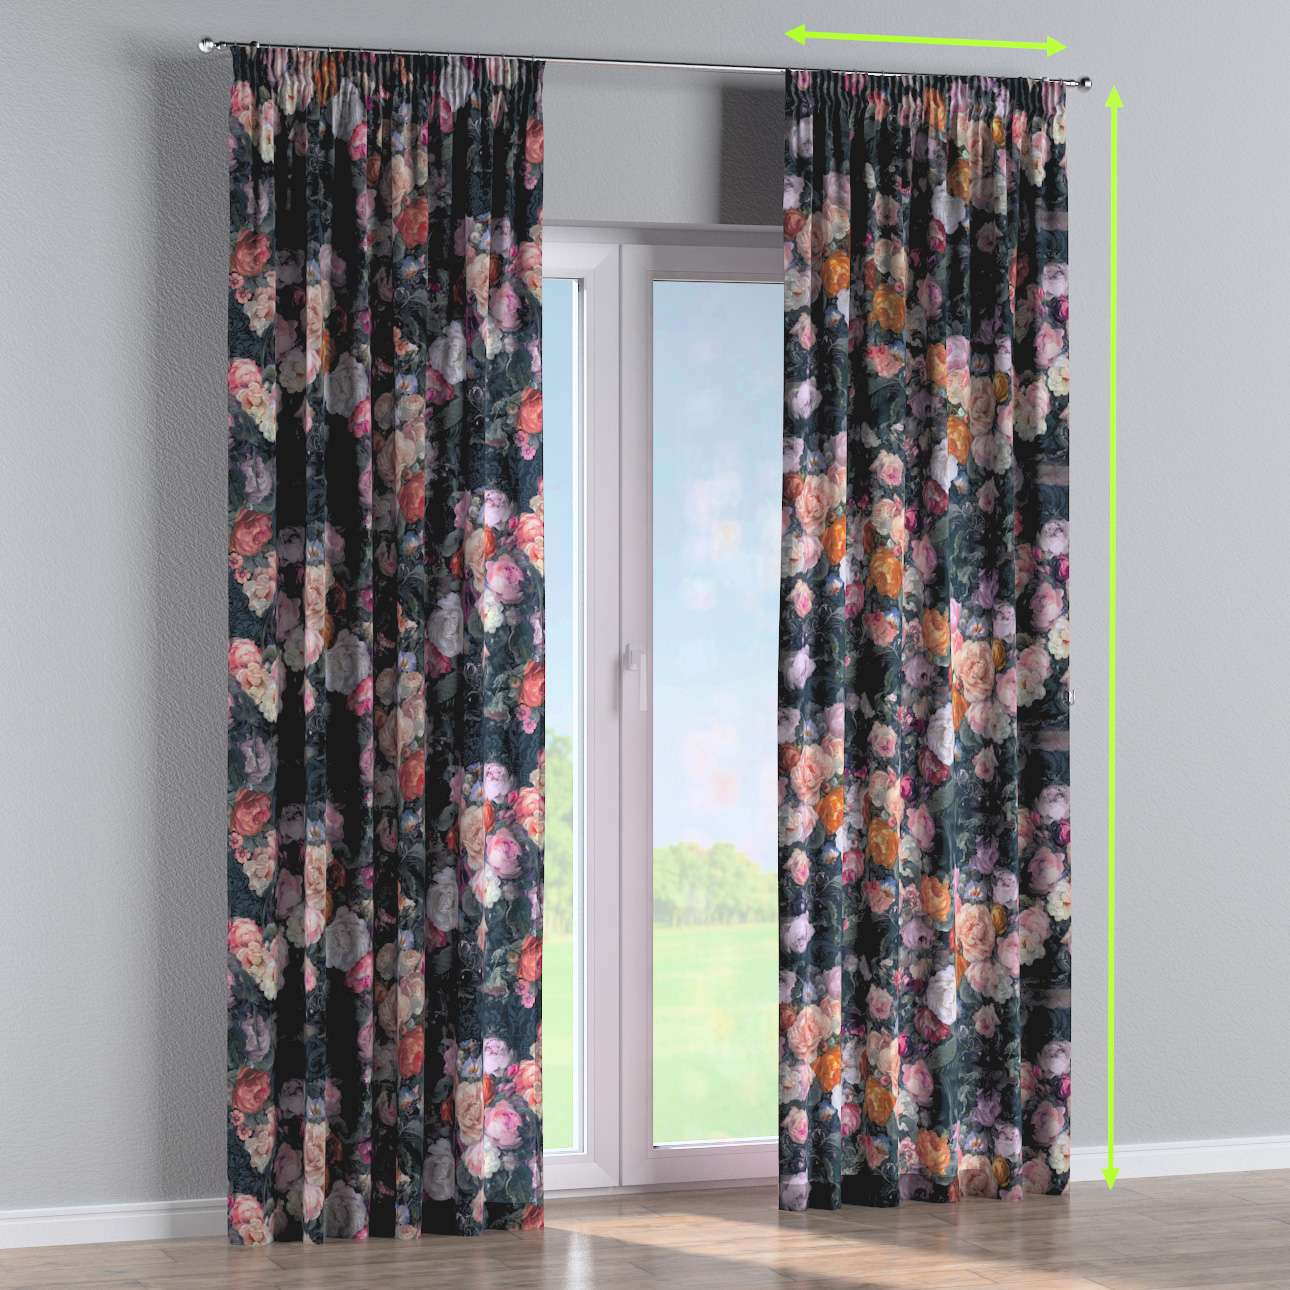 Pencil pleat curtains in collection Gardenia, fabric: 161-02